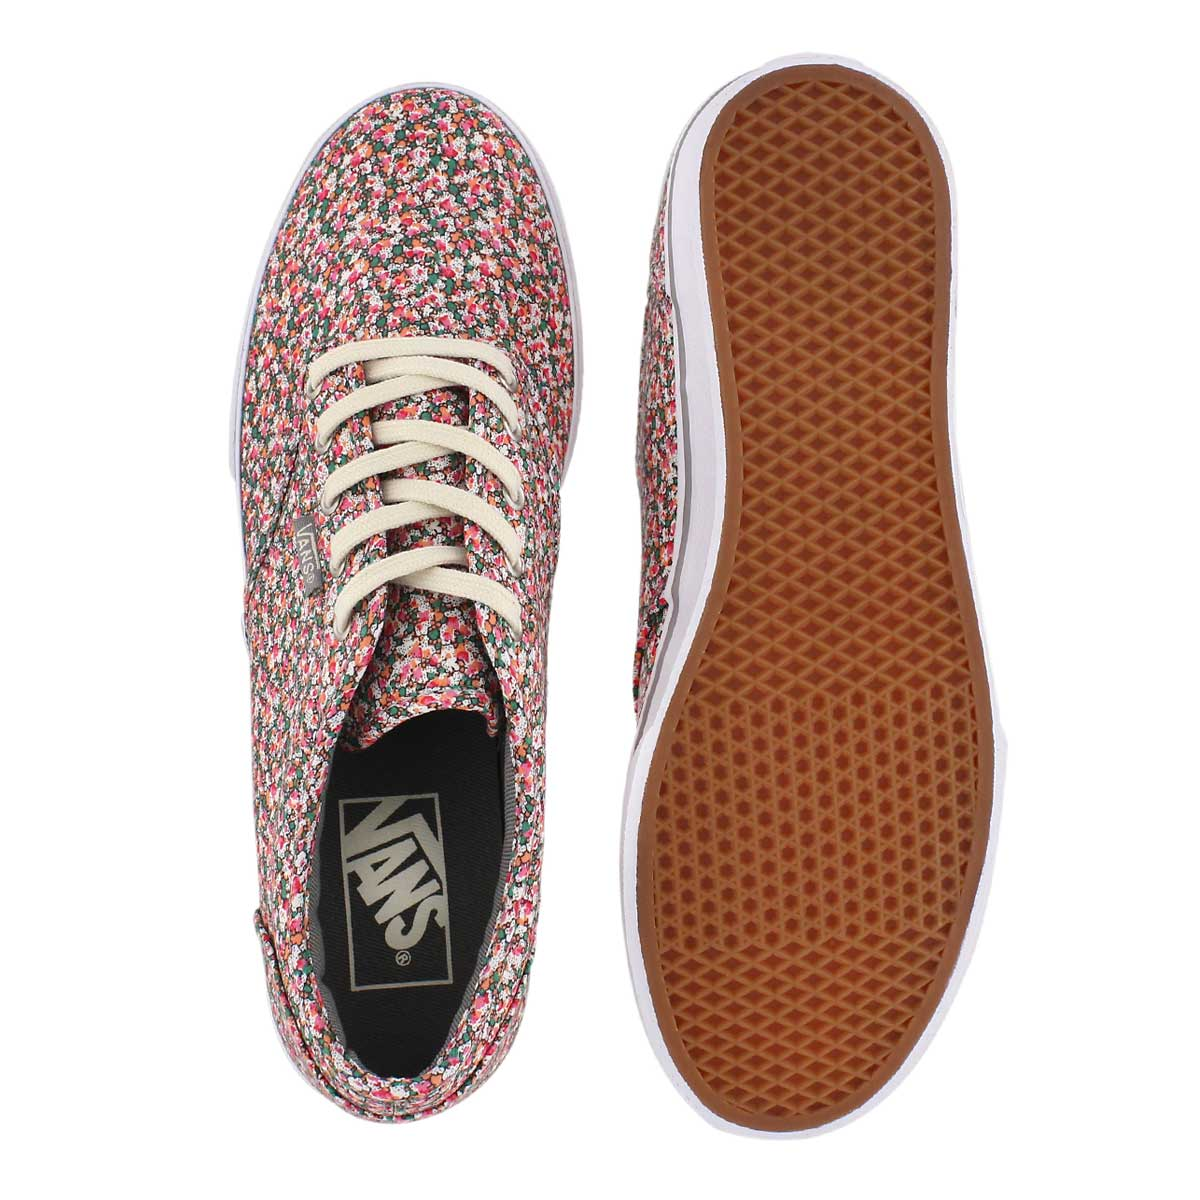 Lds Atwood Low multi lace up sneaker